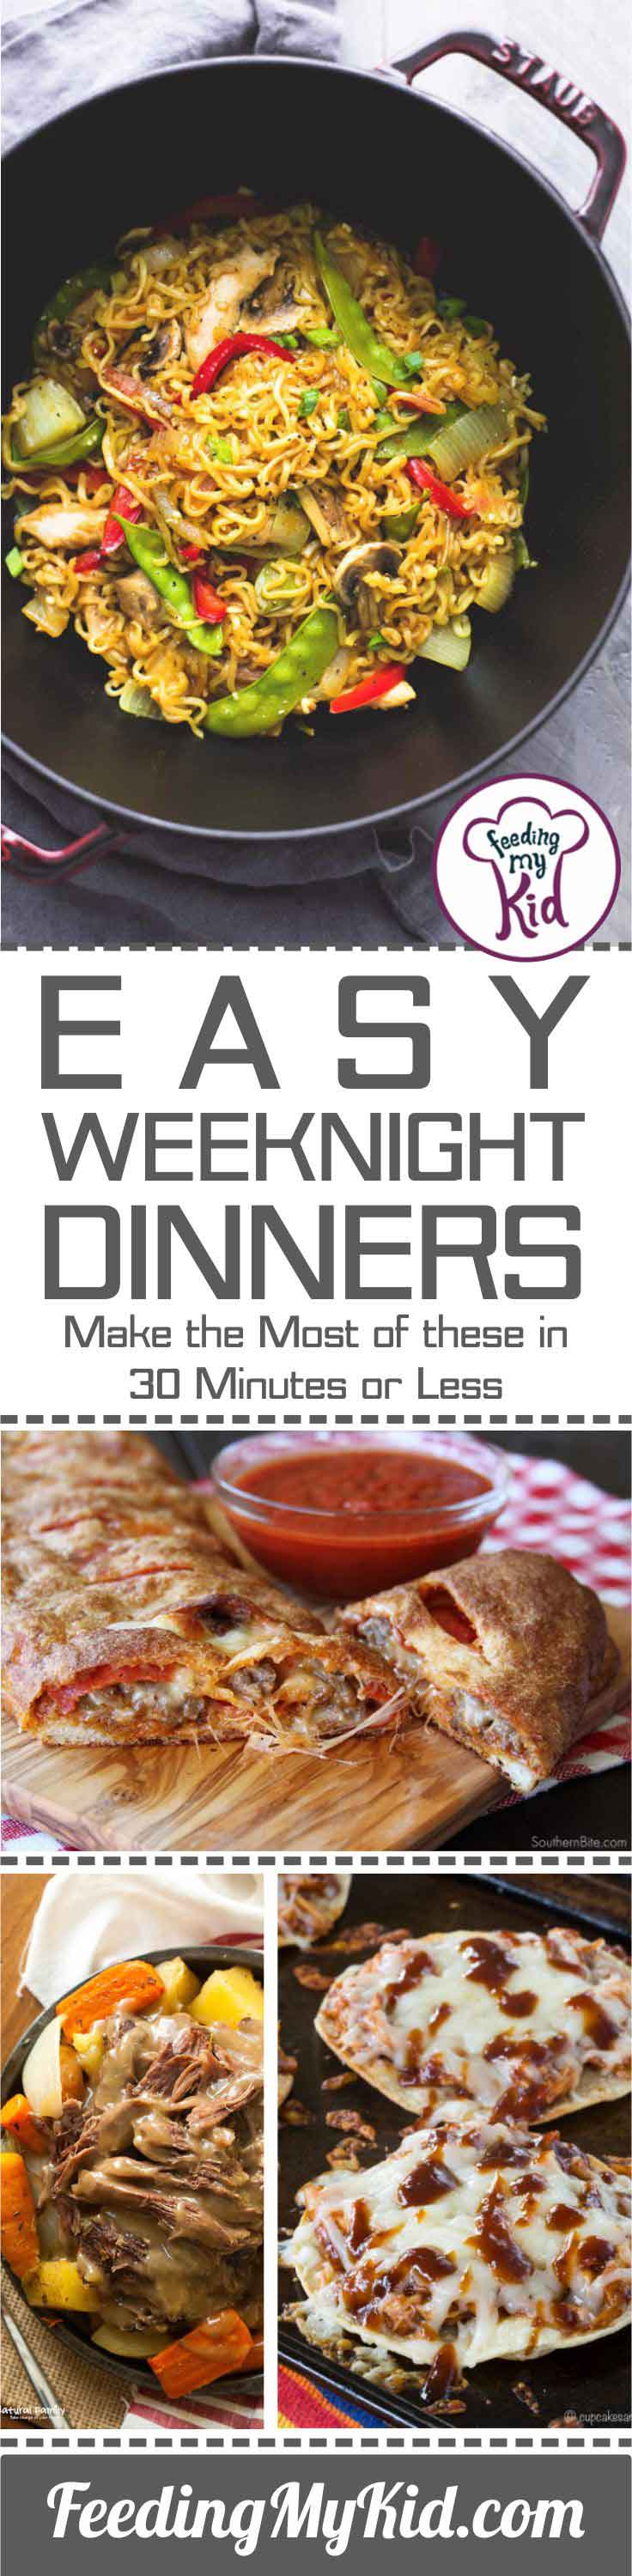 Weeknights can get hectic. Sometimes you just need a meal you can prepare super quick and without hassle. These easy meal ideas are for you!